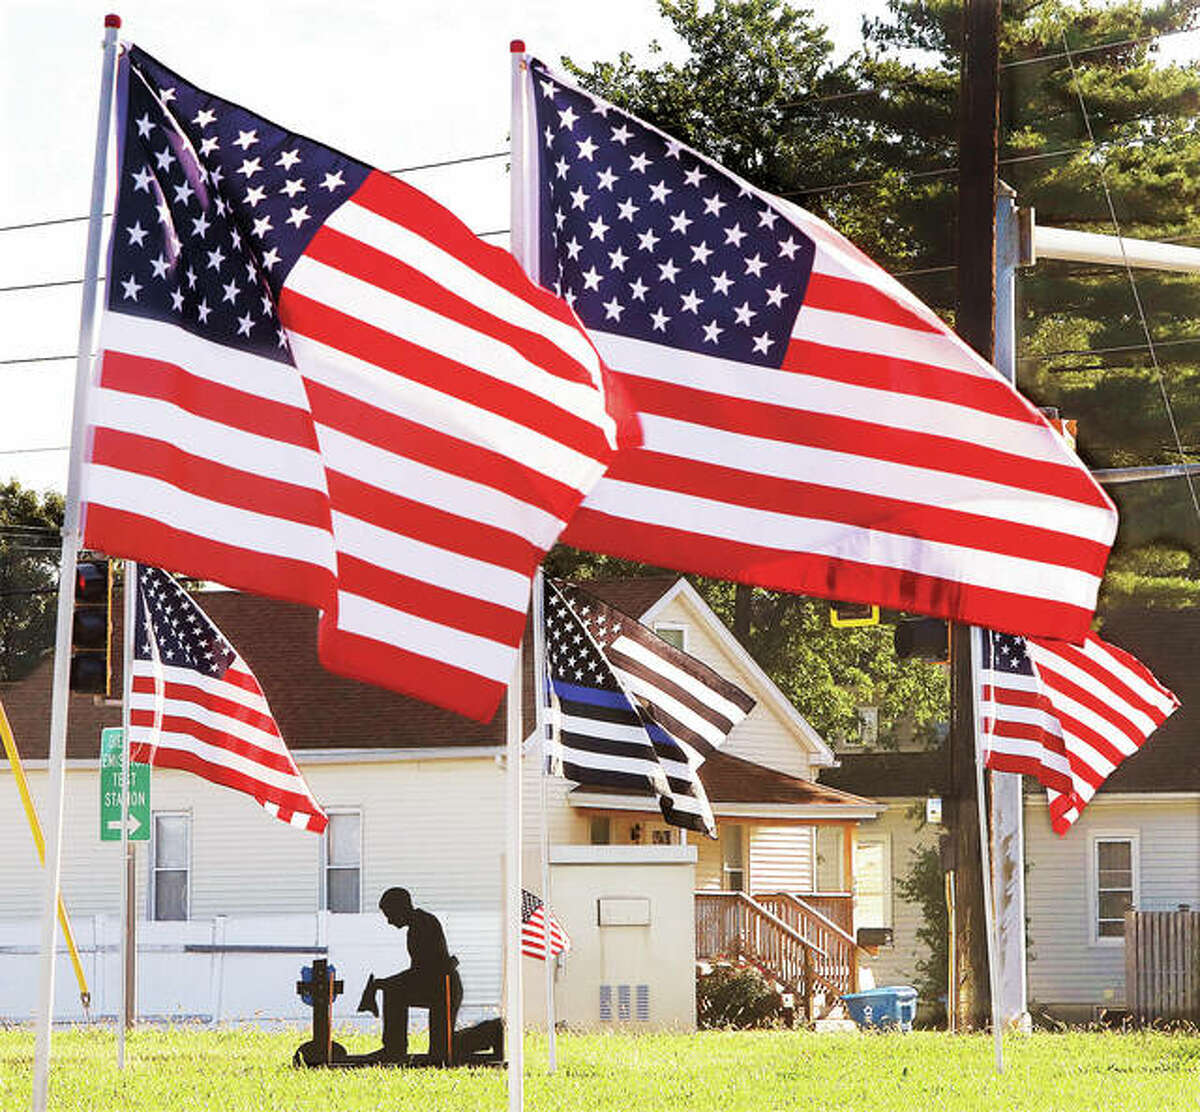 A silhouette cut-out of a kneeling police officer was part of a large flag display this week in front of the Wood River Police station. Flags have been popping up across the area for the 20th anniversary of September 11, 2001, when 2,752 people died, including 37 Port Authority police officers and 23 New York City police officers.